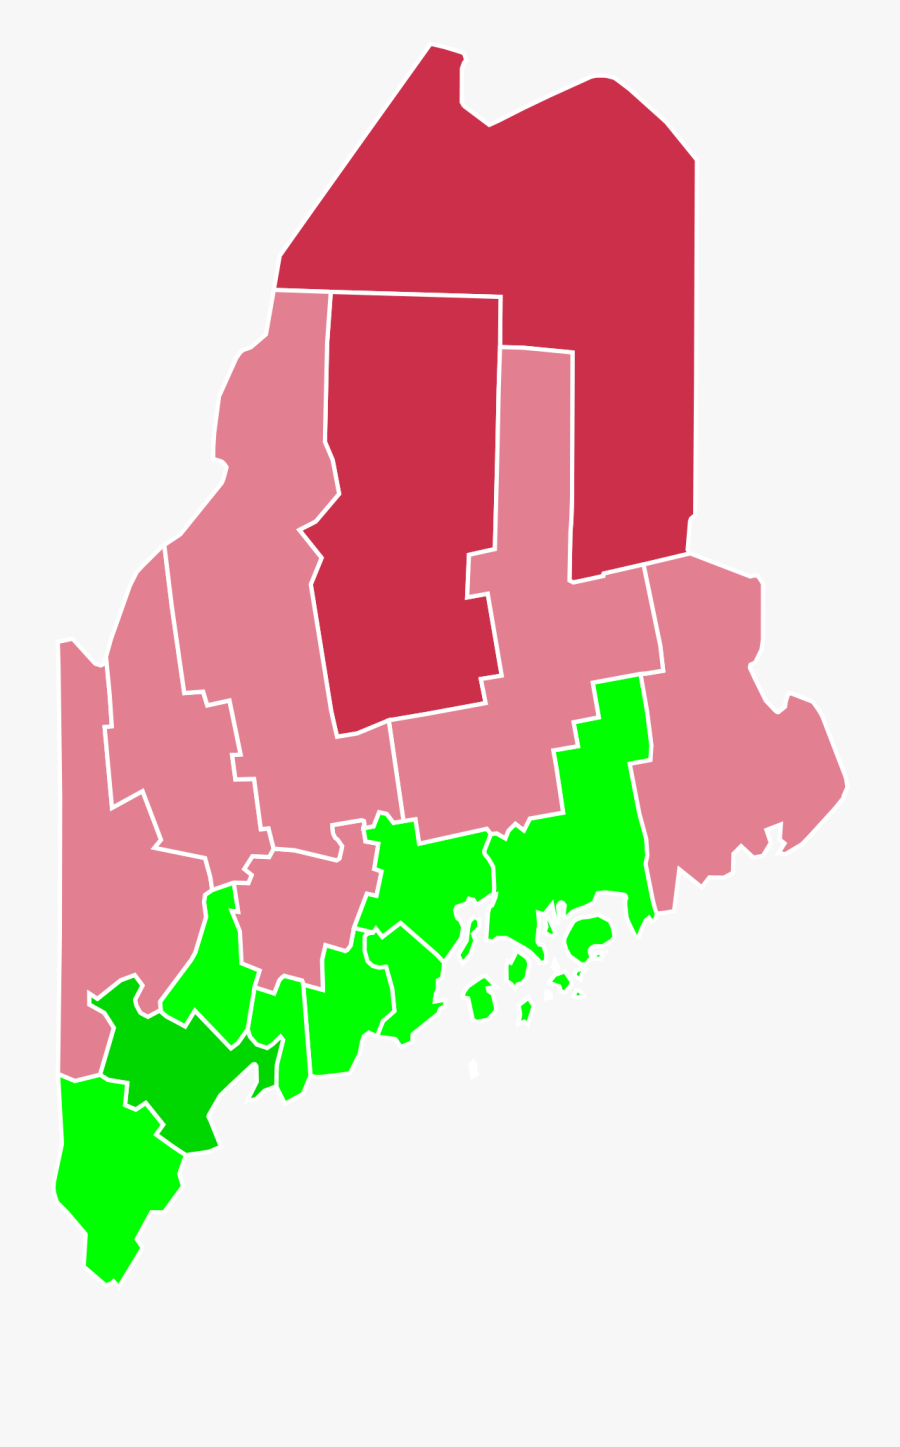 Maine 2016 Election Results, Transparent Clipart